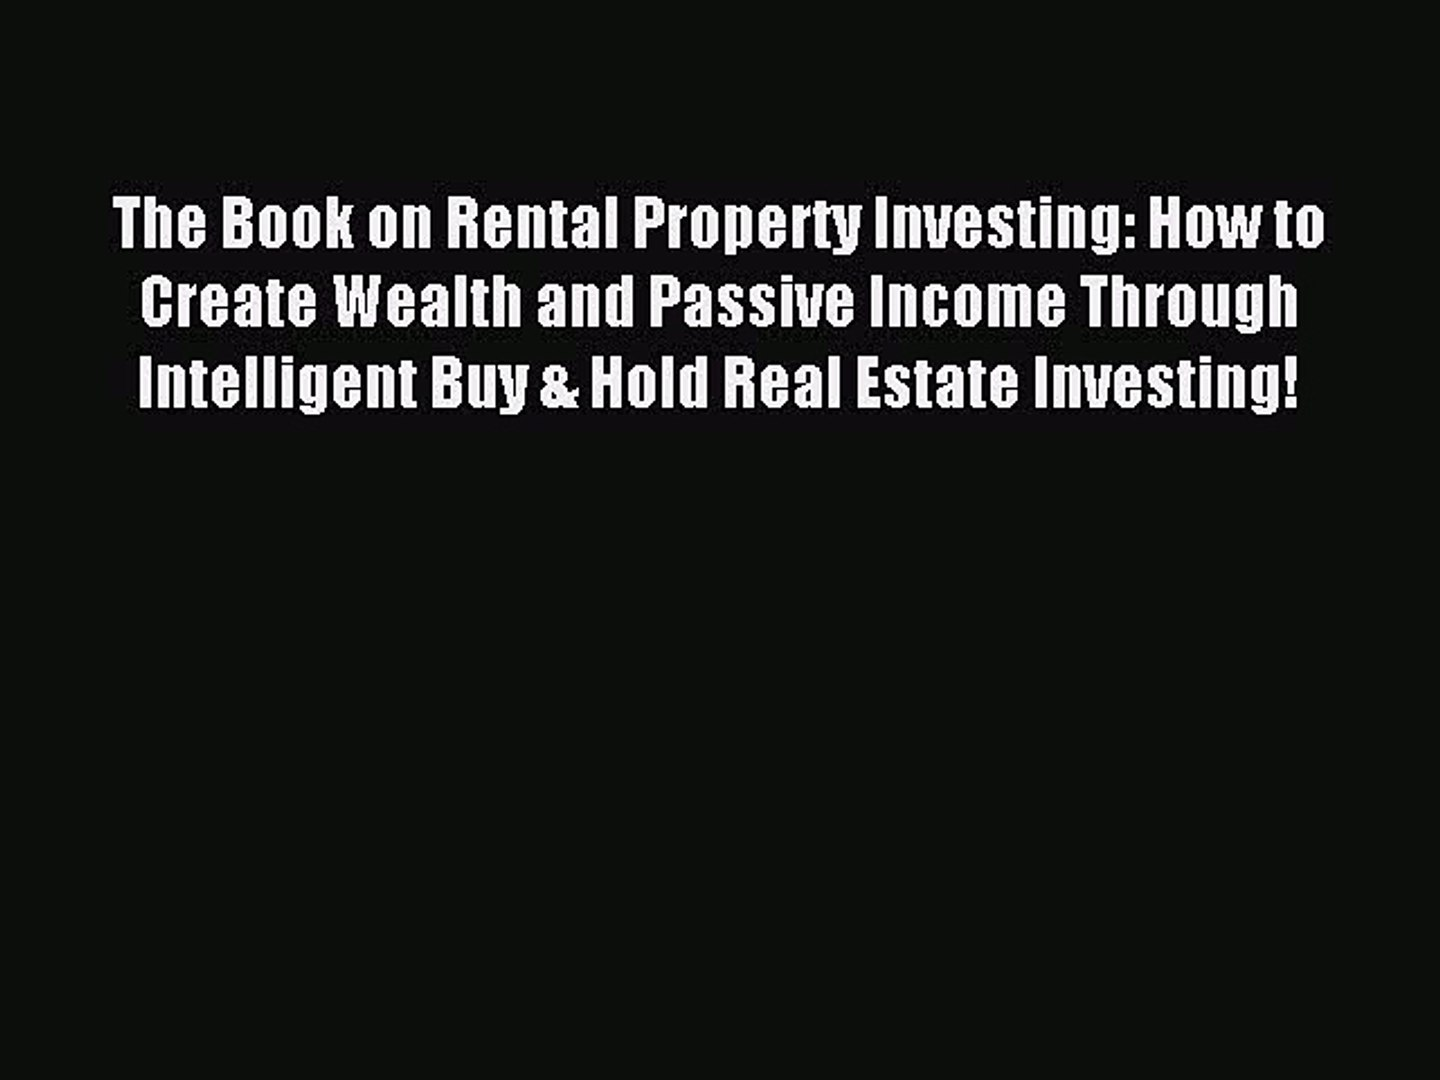 Read The Book on Rental Property Investing: How to Create Wealth and Passive Income Through